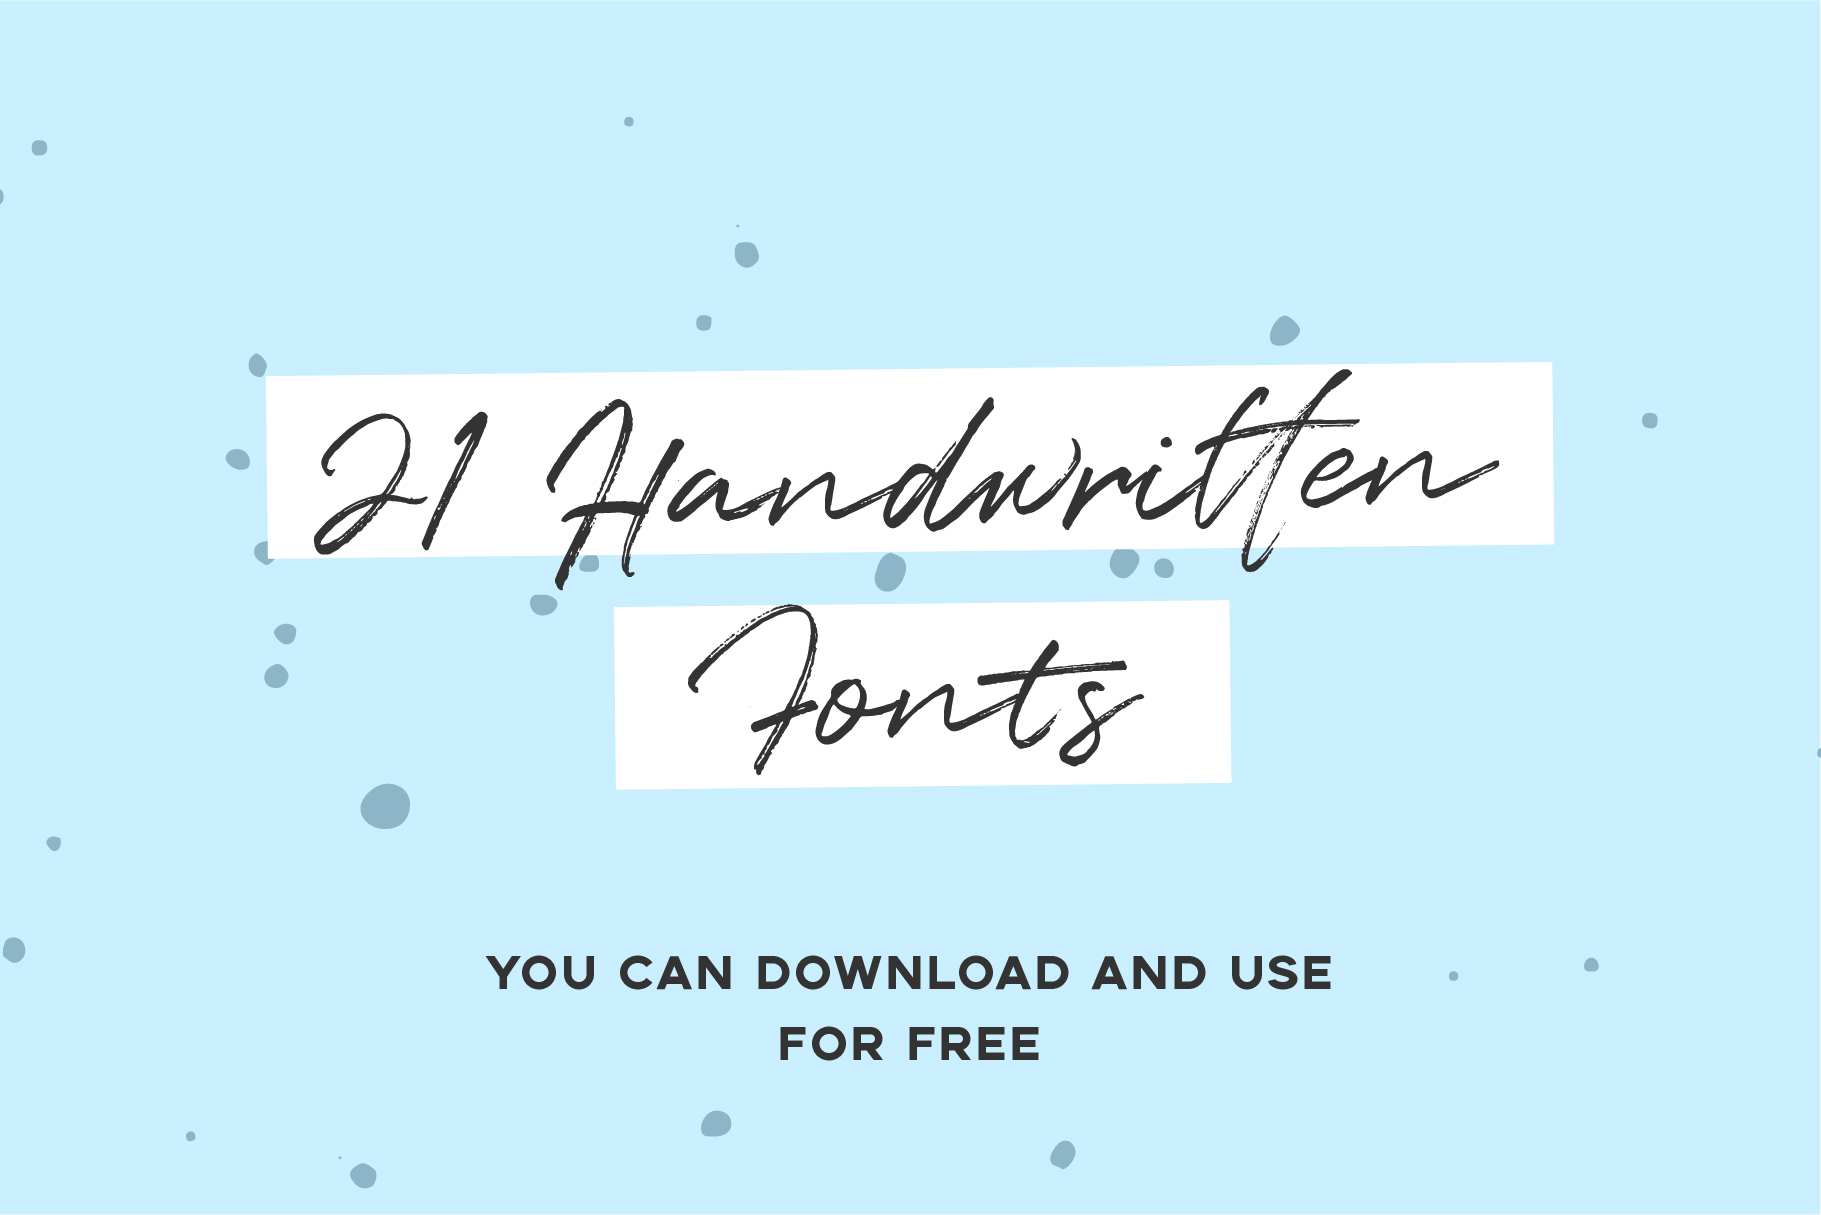 """21 Handwritten Fonts"" FONT please :)"